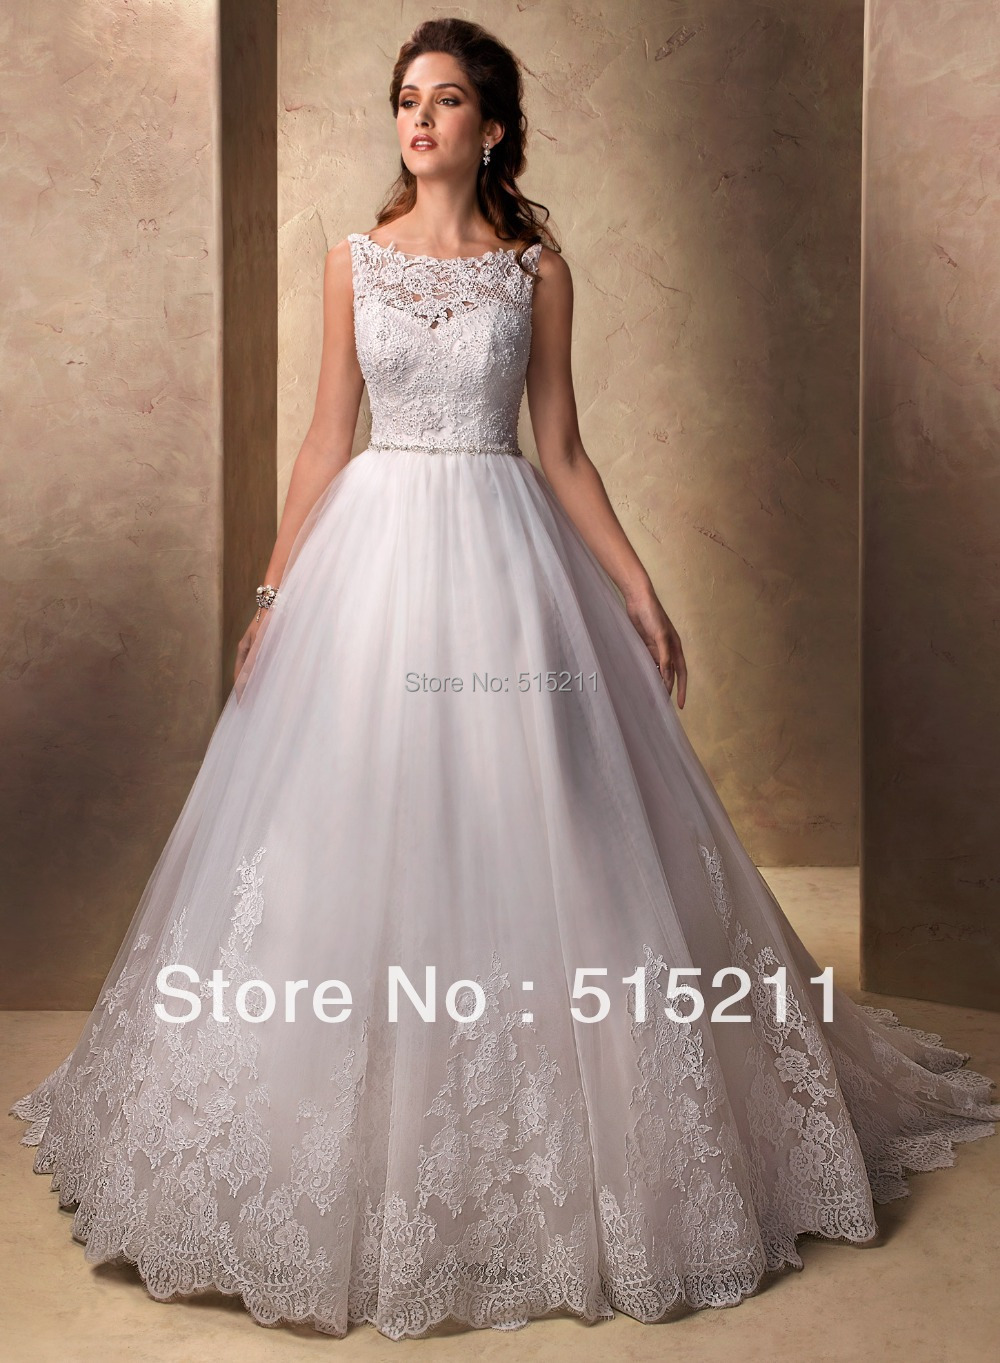 Popular victorian wedding dresses buy cheap victorian wedding - Vintage Victorian Style Scoop Neckline Lace Covered Back Princess Ball Gown Bridal Wedding Dress 2017 New